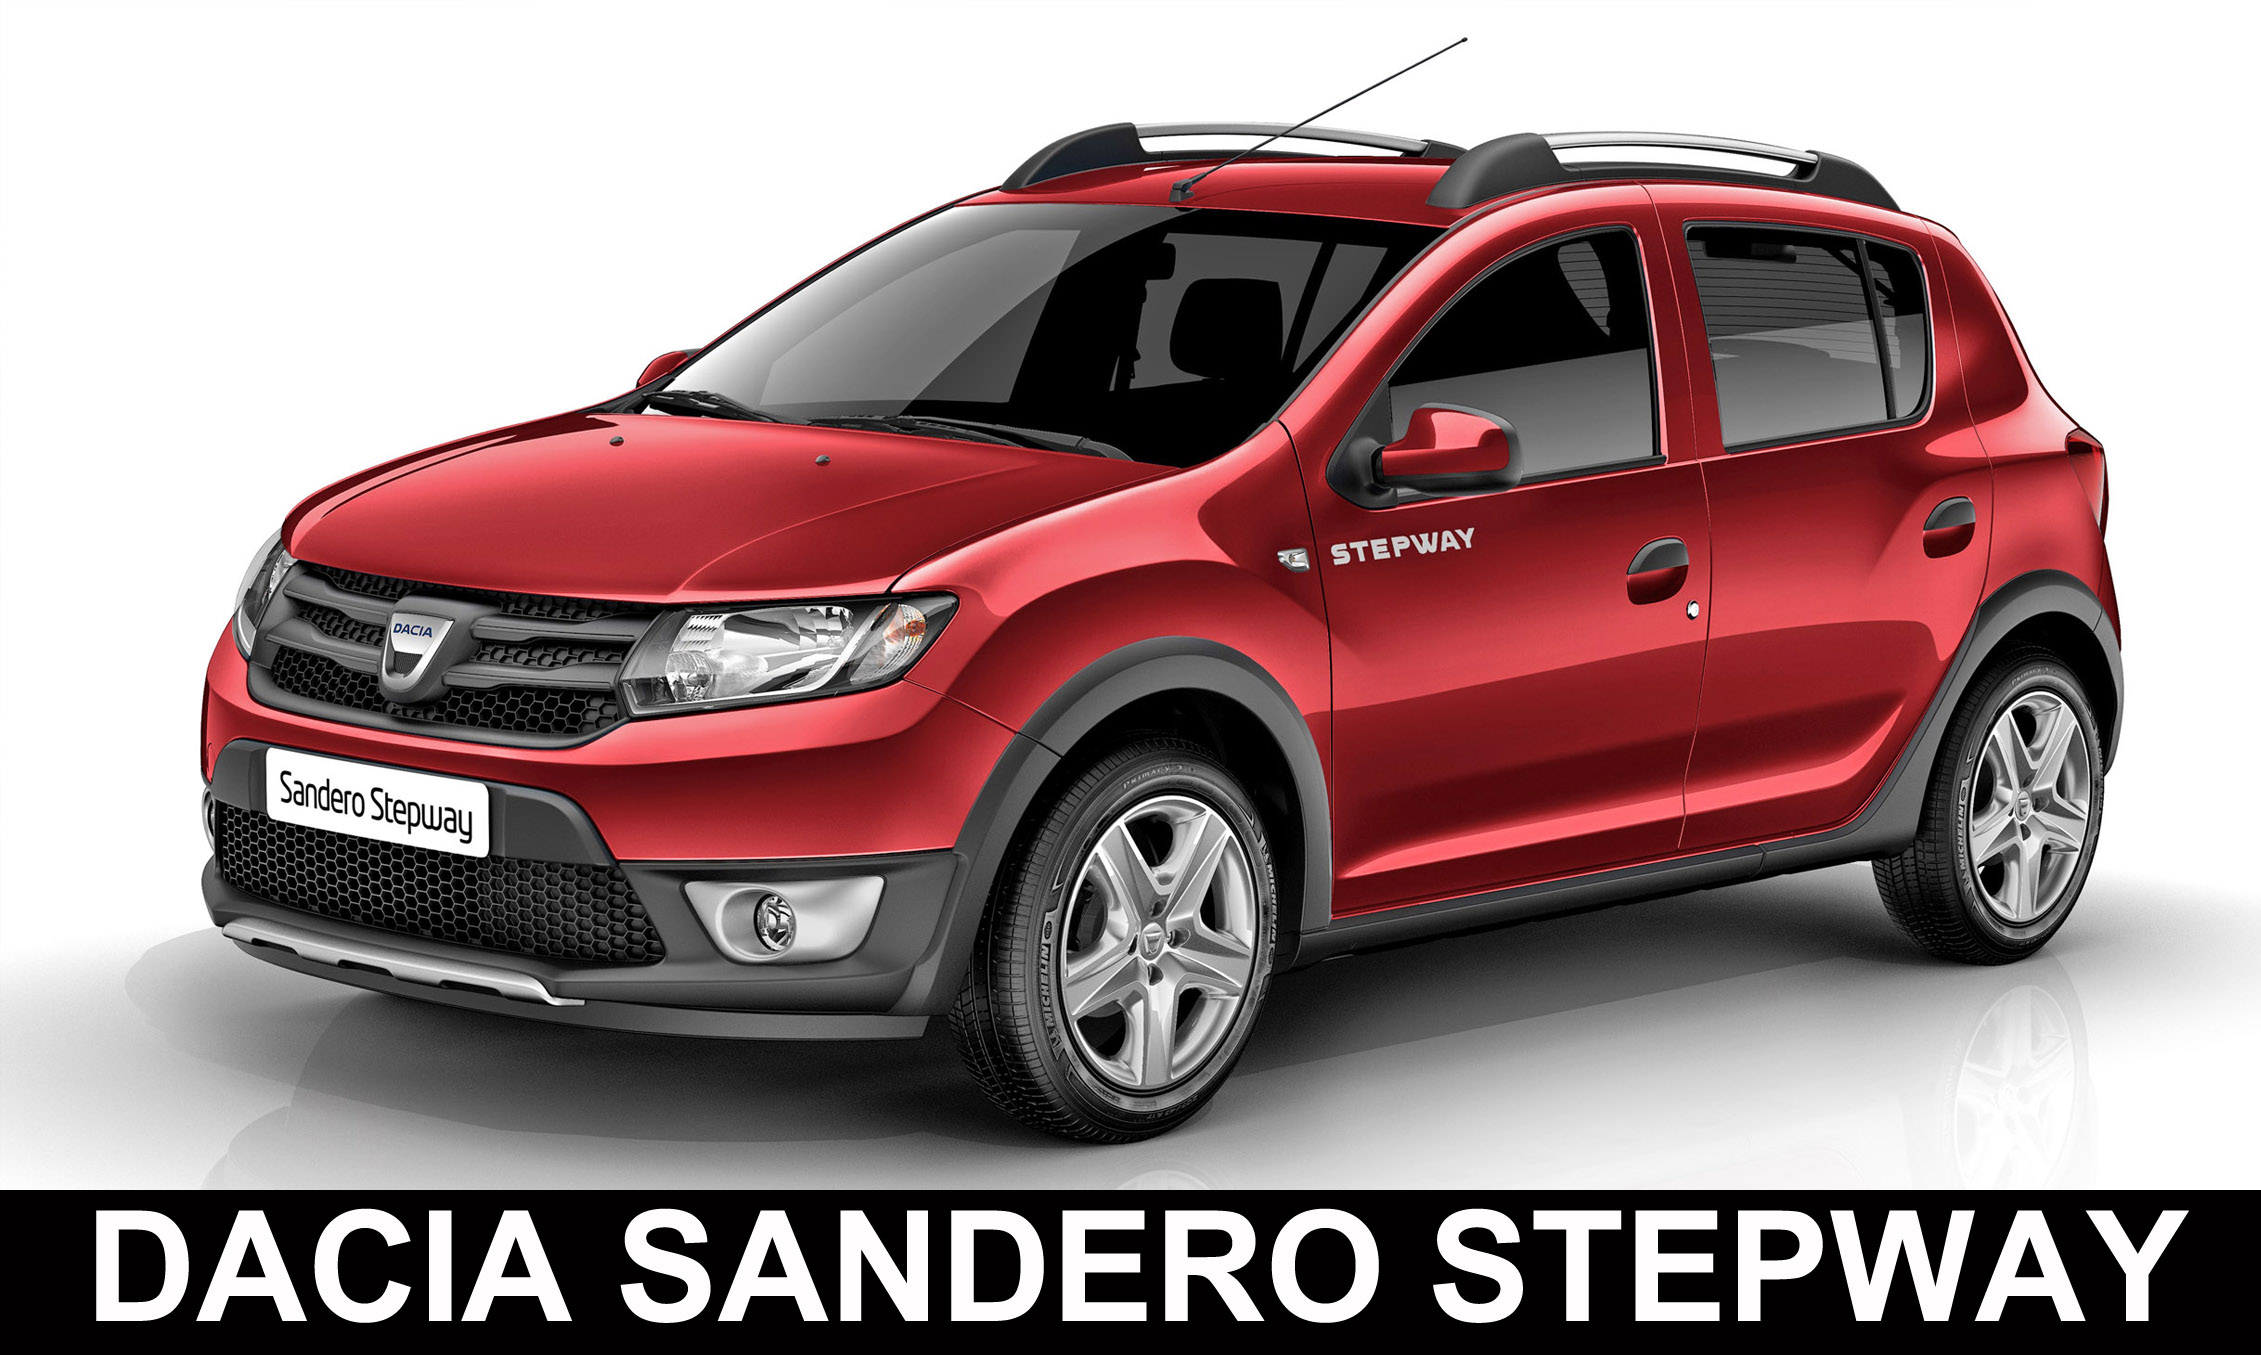 dacia sandero prix neuf dacia sandero neuve sandero tce 90 stepway prestige moins dacia. Black Bedroom Furniture Sets. Home Design Ideas